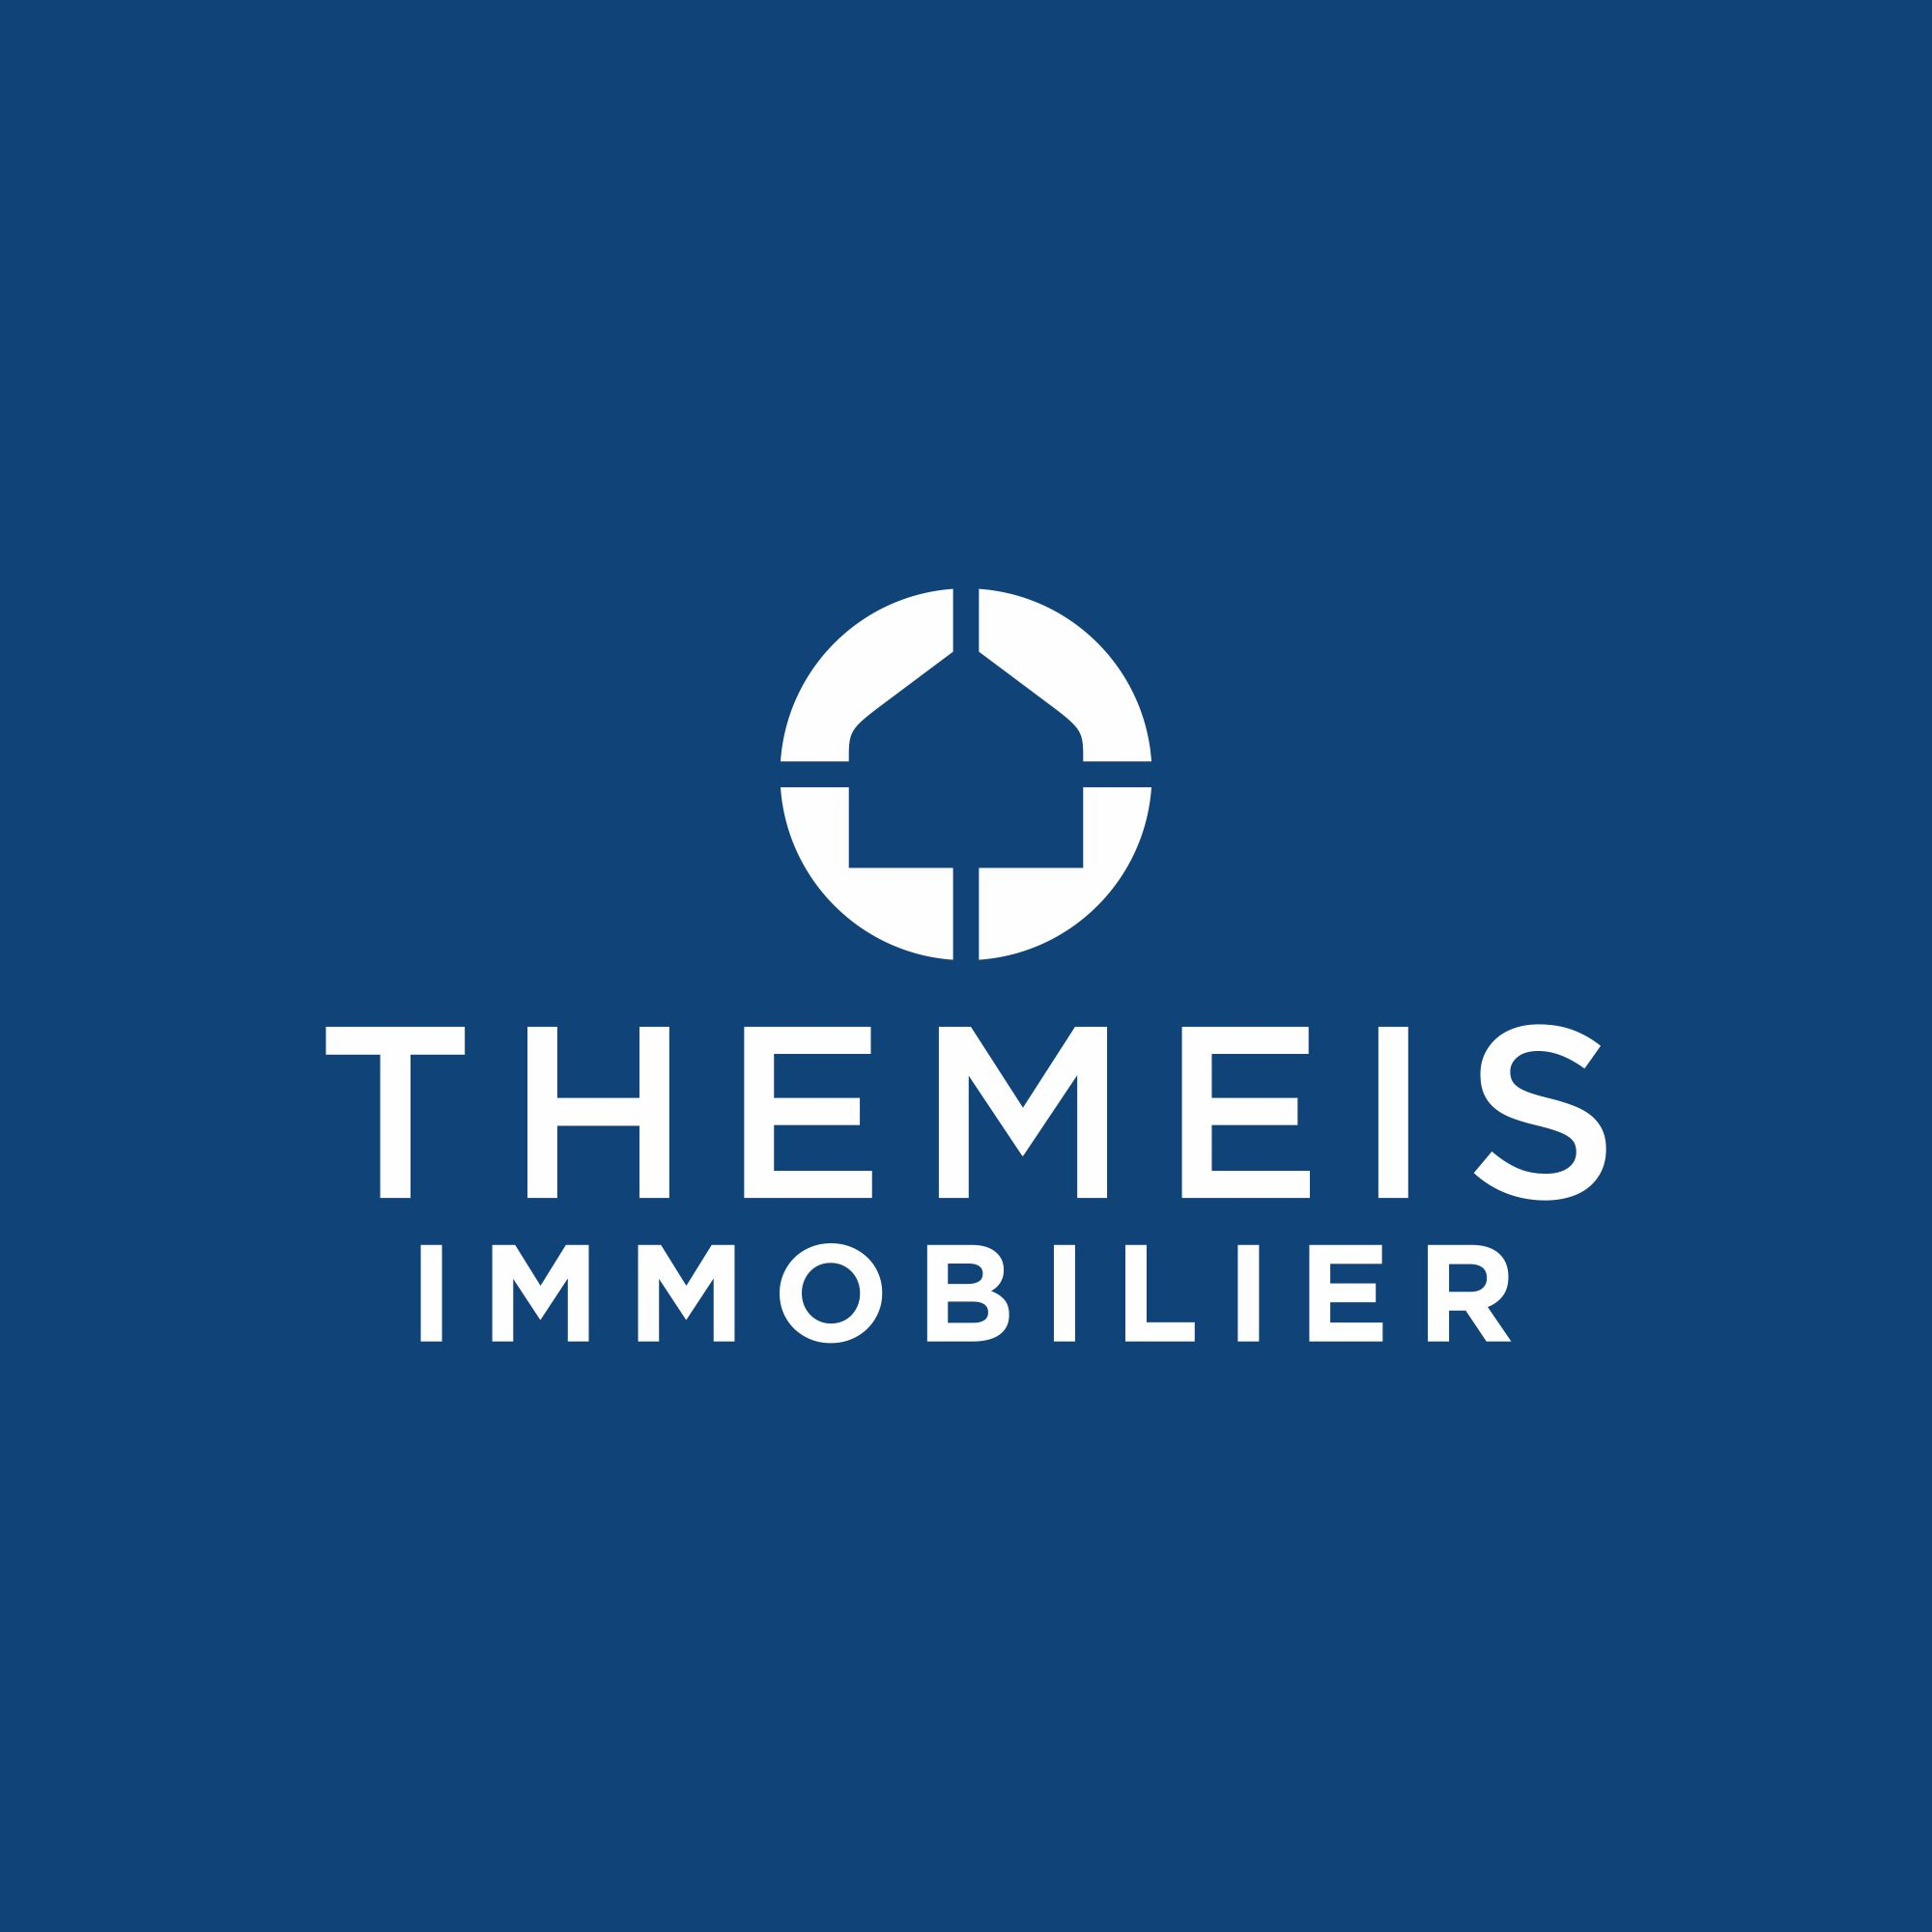 THEMEIS IMMOBILIER